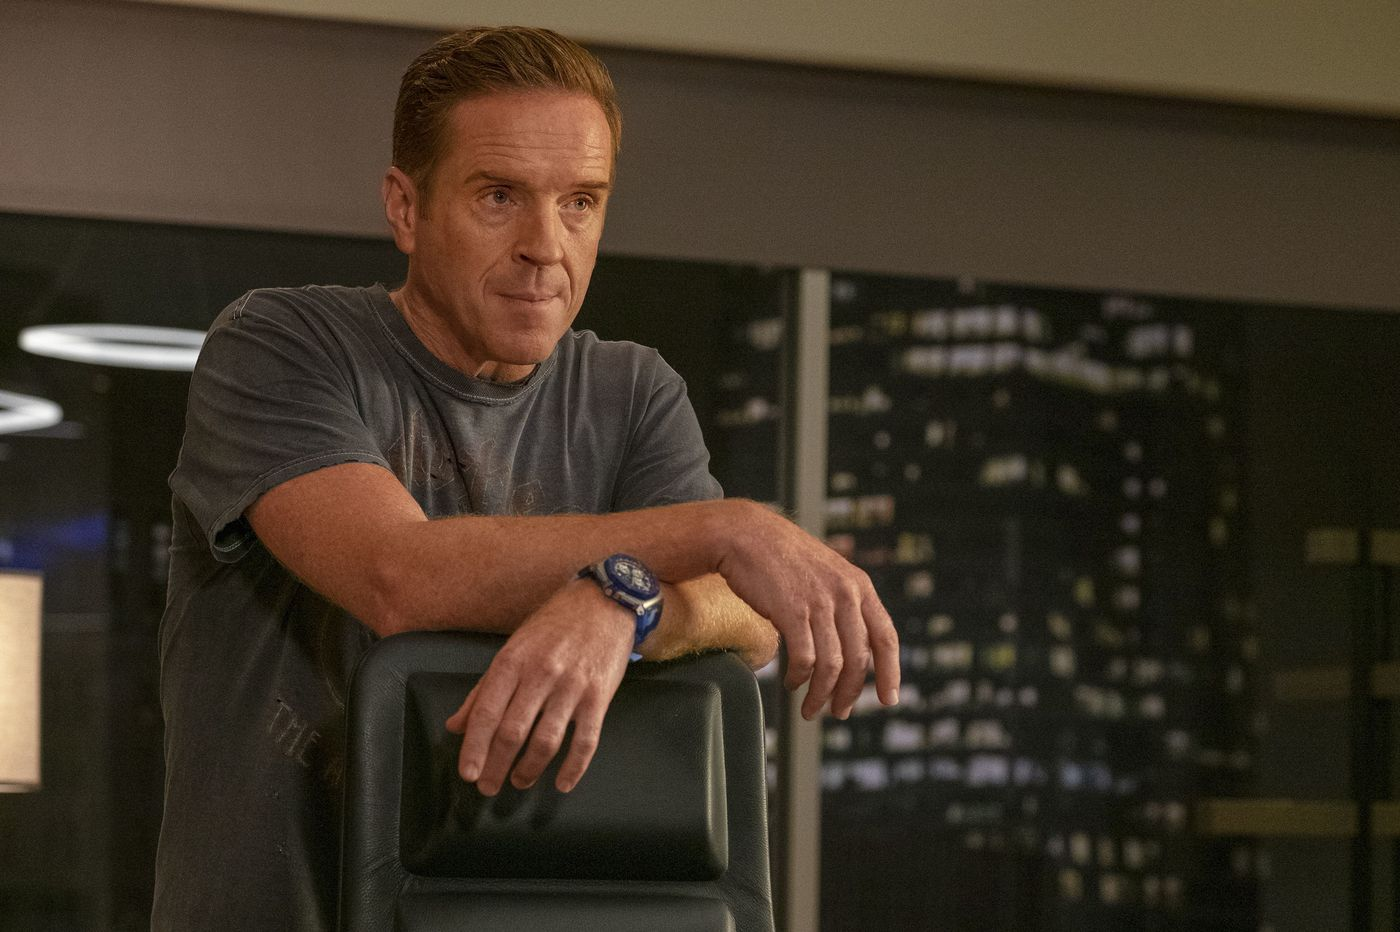 TV picks: 'Billions,' 'The Fix,' 'The Village,' a 'Pretty Little Liars' spin-off, and more